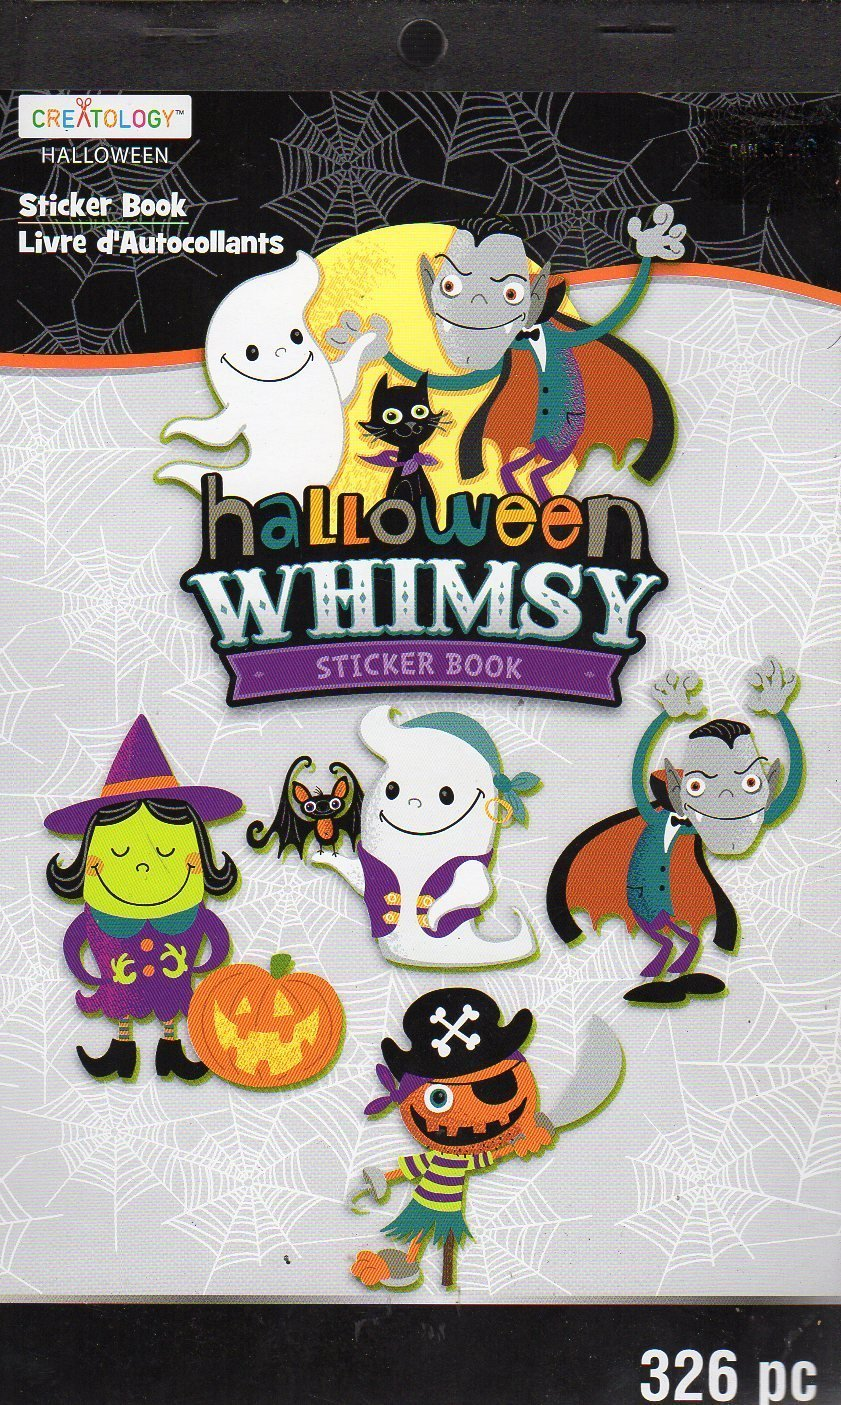 Hallowen Whimsy Stickers Book - 326 Stickers - Halloween Themed